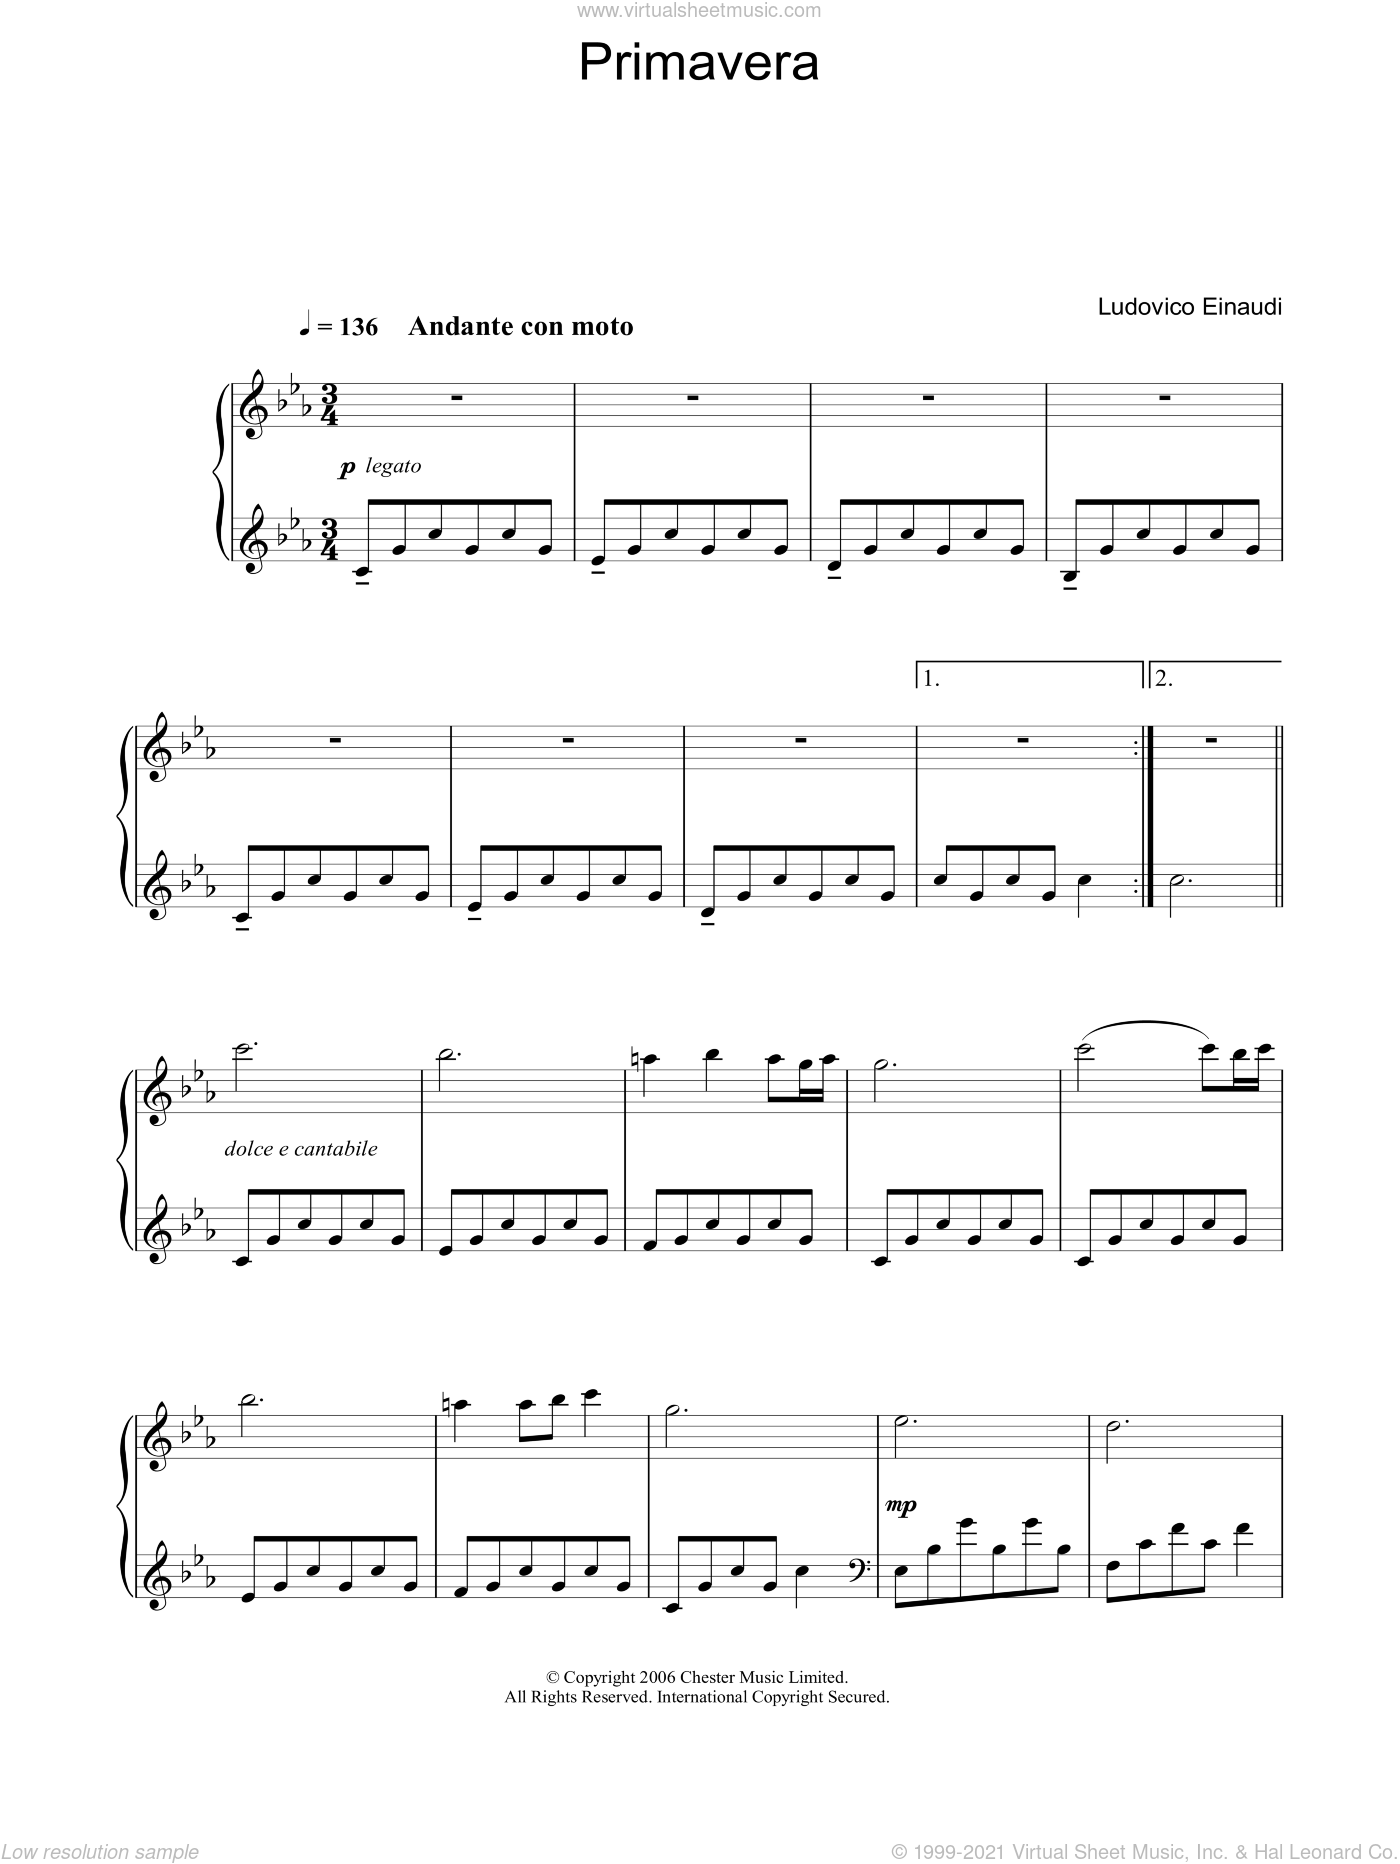 Primavera sheet music for piano solo by Ludovico Einaudi, classical score, intermediate skill level